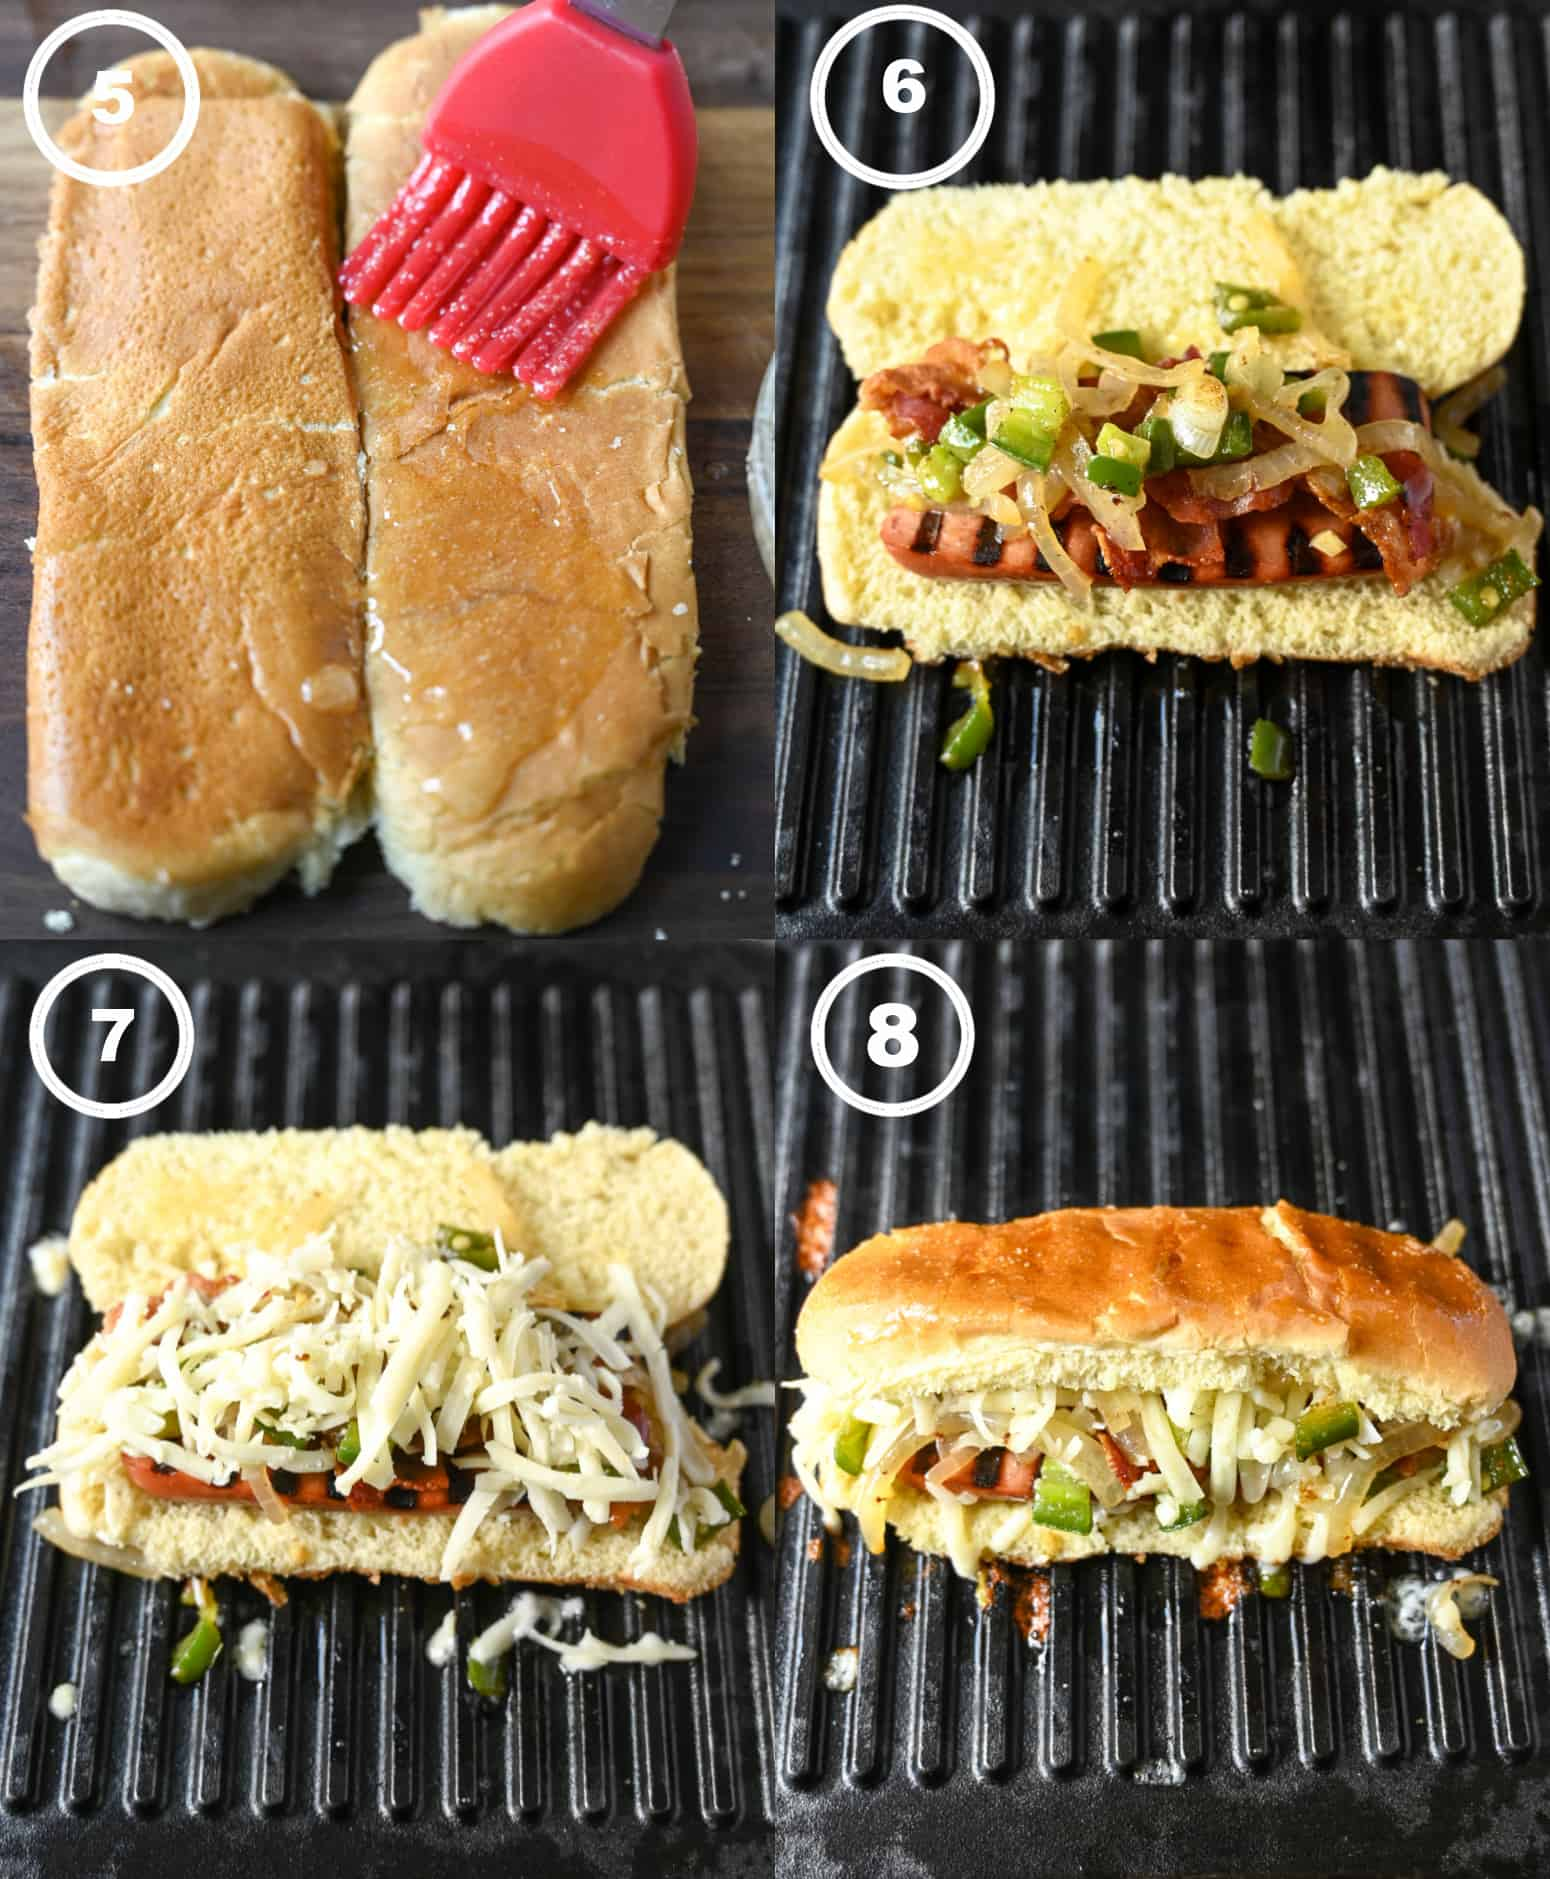 Four process photos. First one hotdog bun that has been flattened and garlic butter is being brushed on. Second one, hot dog, onions and bacon is put on top of the bun and placed on the grill pan. Third one, cheese is then put on top. Fourth one, bun is closed and ready to be flipped.